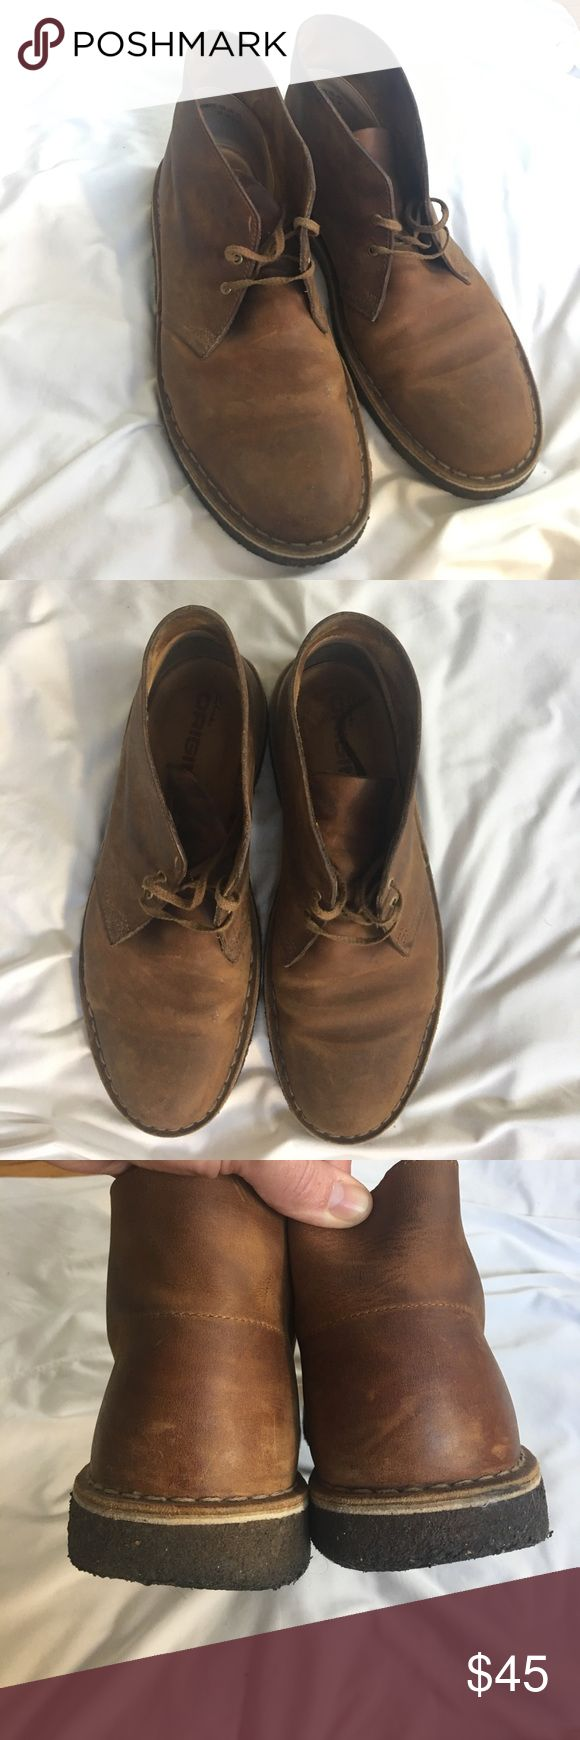 Clark's Desert Boot Chukkas Gently used (see pics of insole). Brown leather Clarks Shoes Chukka Boots